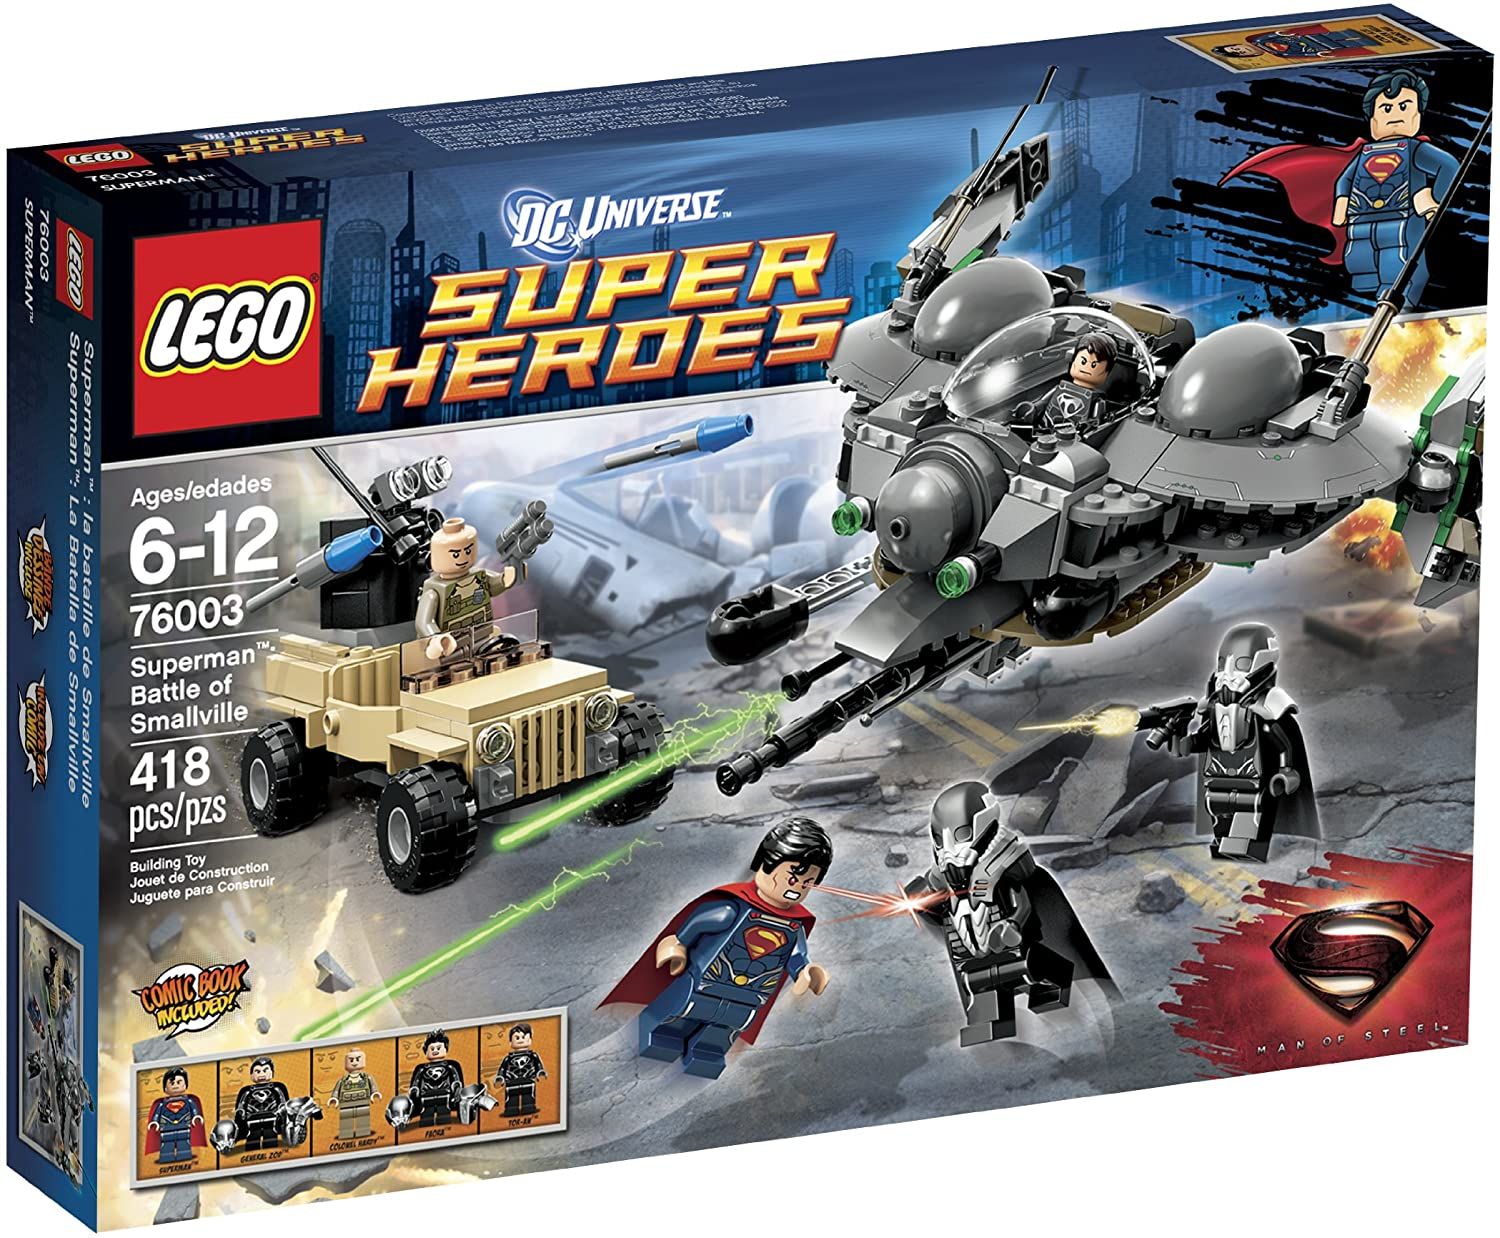 Super Heroes Superman Battle of Smallville (76003)